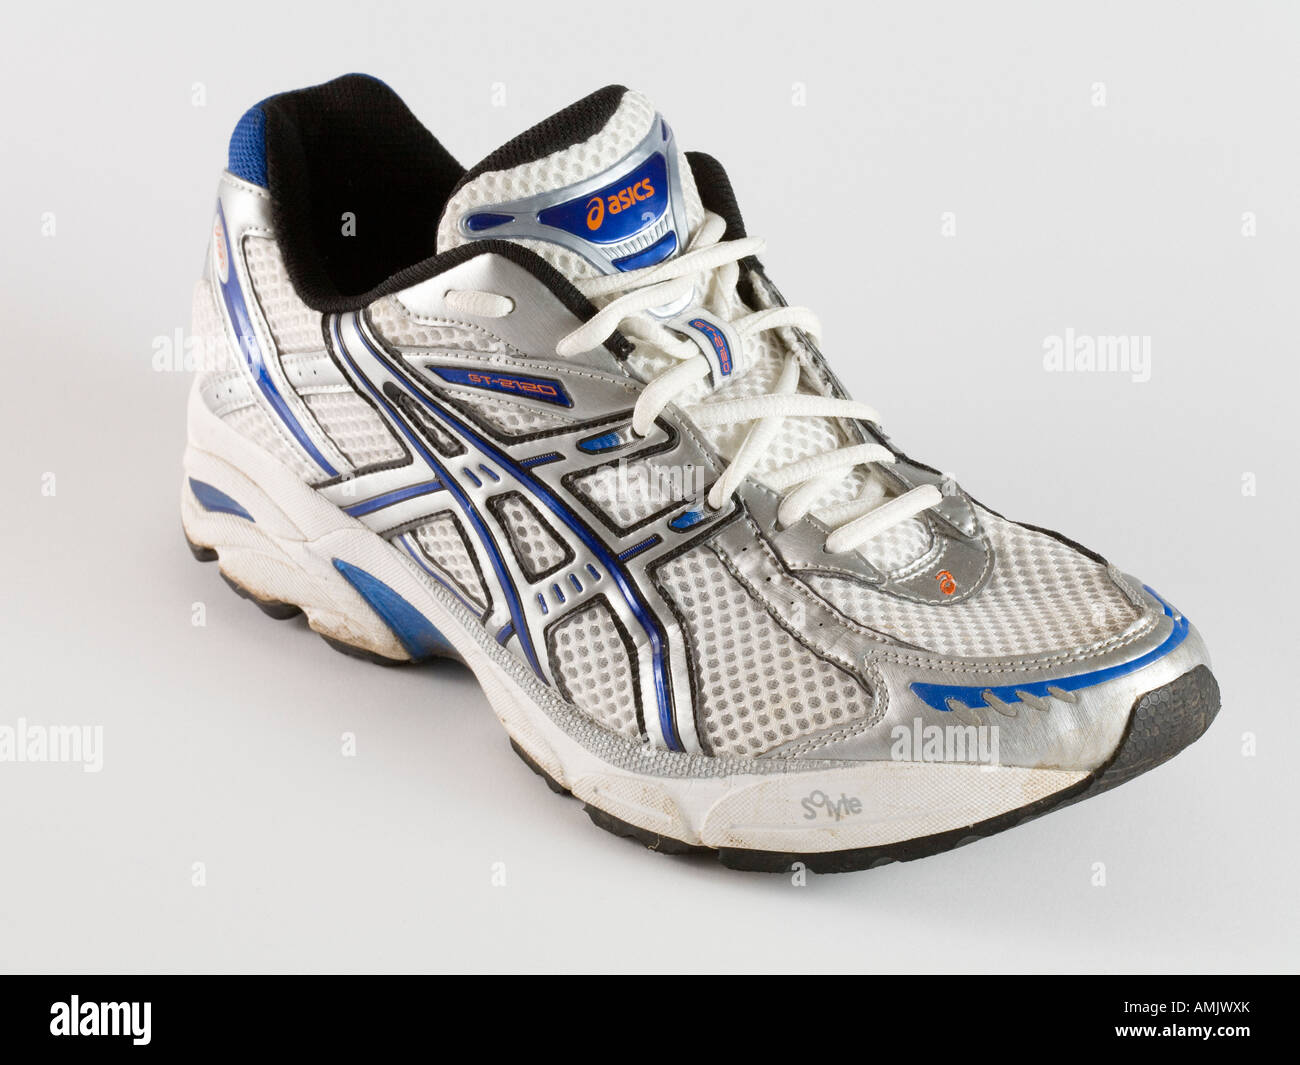 Buy asics 2100 \u003e Up to OFF66% Discounted